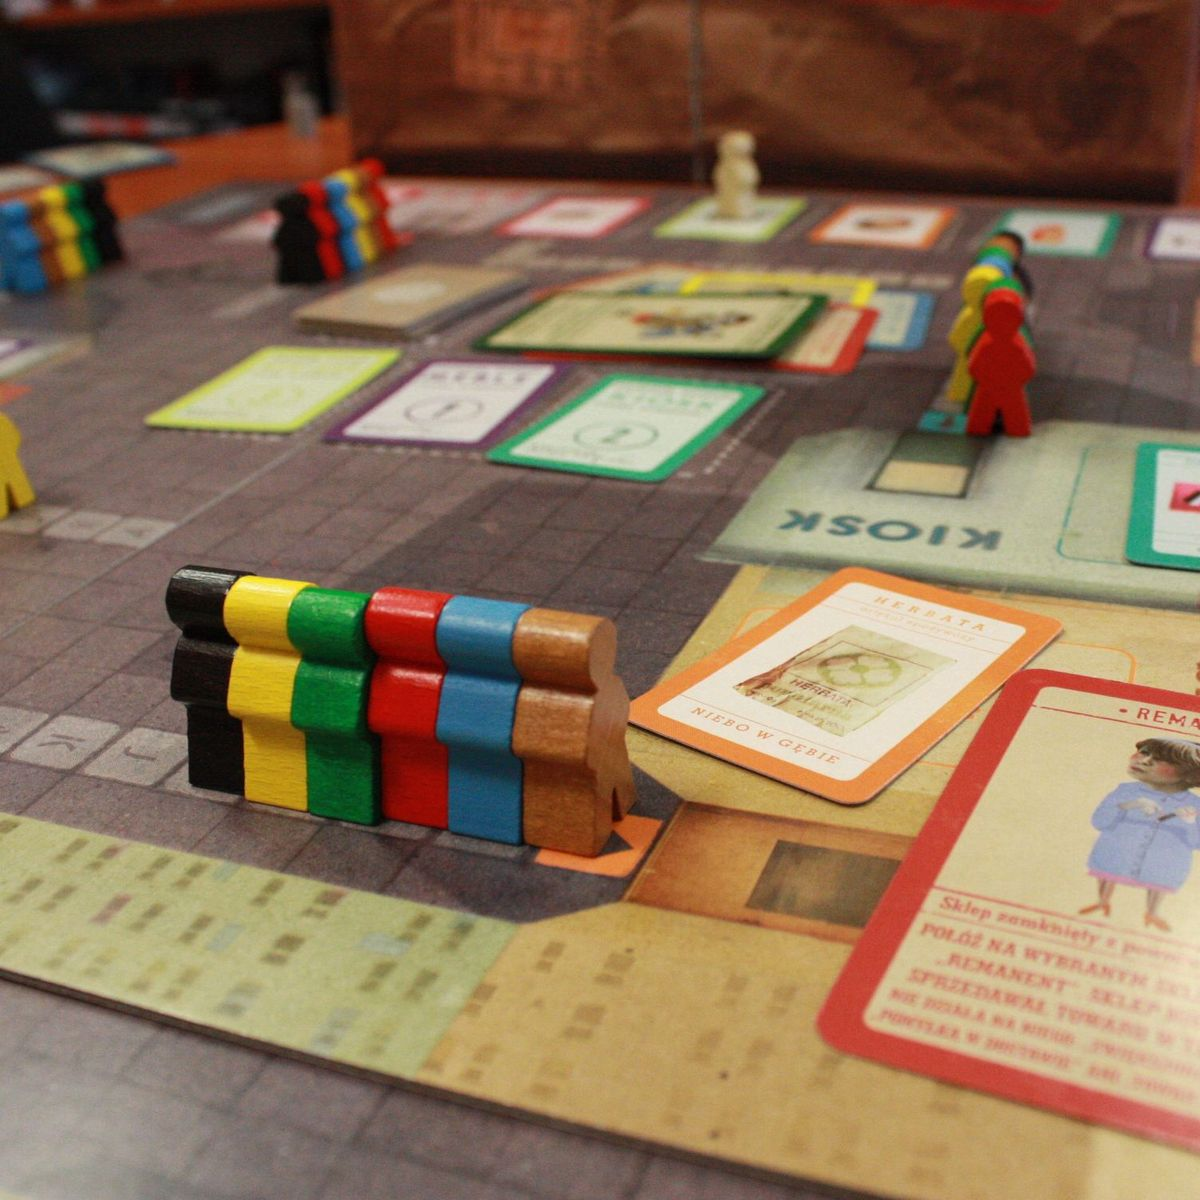 Geld monopoly europa edition Monopoly: Geld